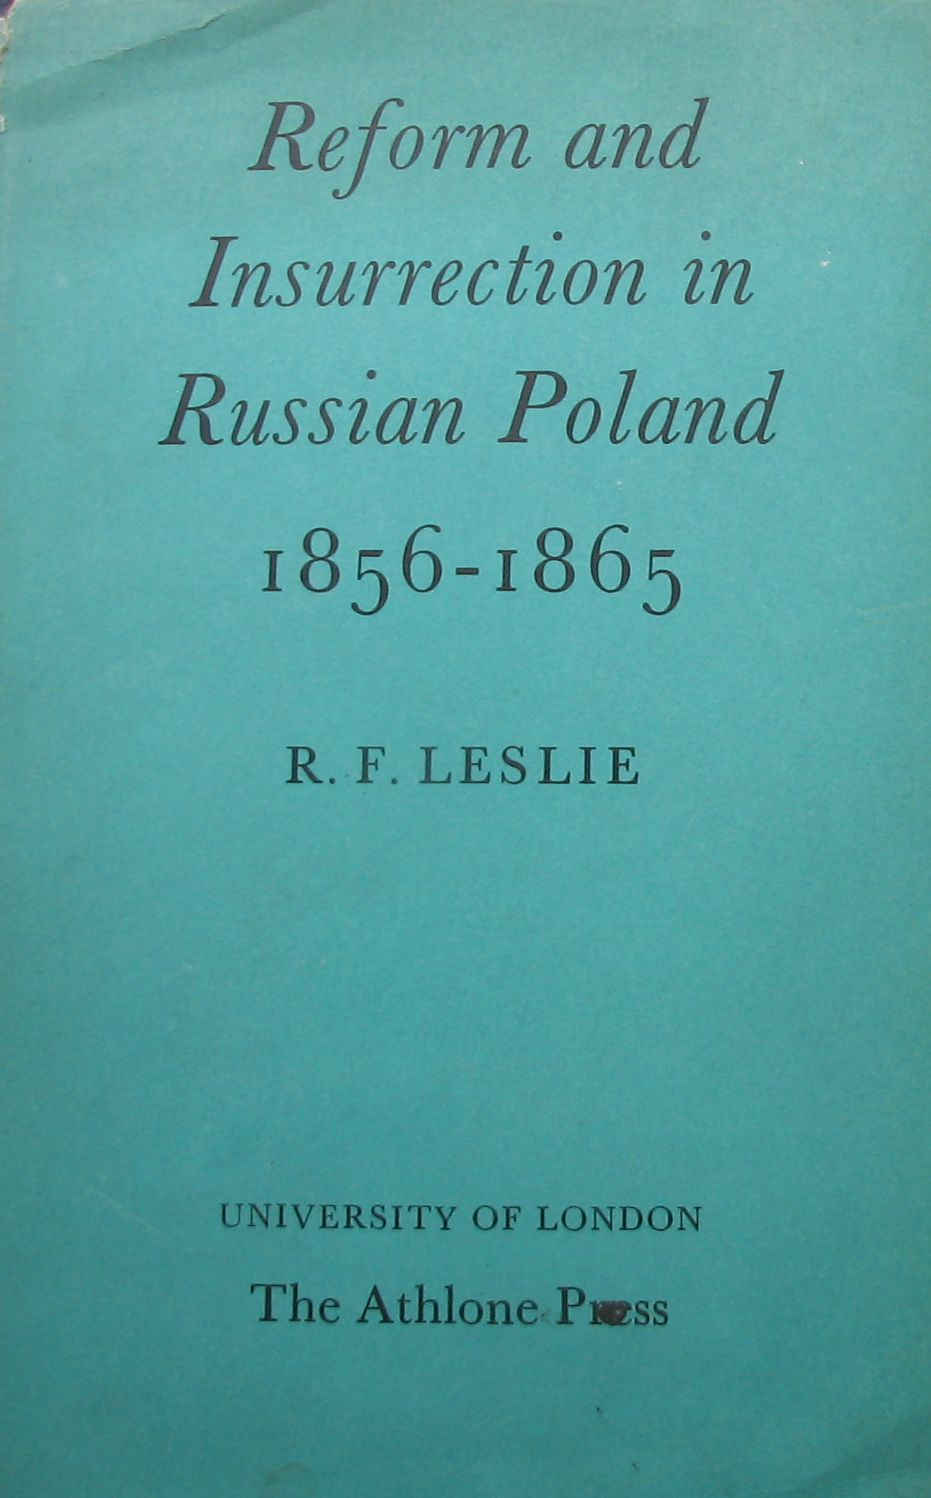 Reform and Insurrection In Russian Poland 1856-186